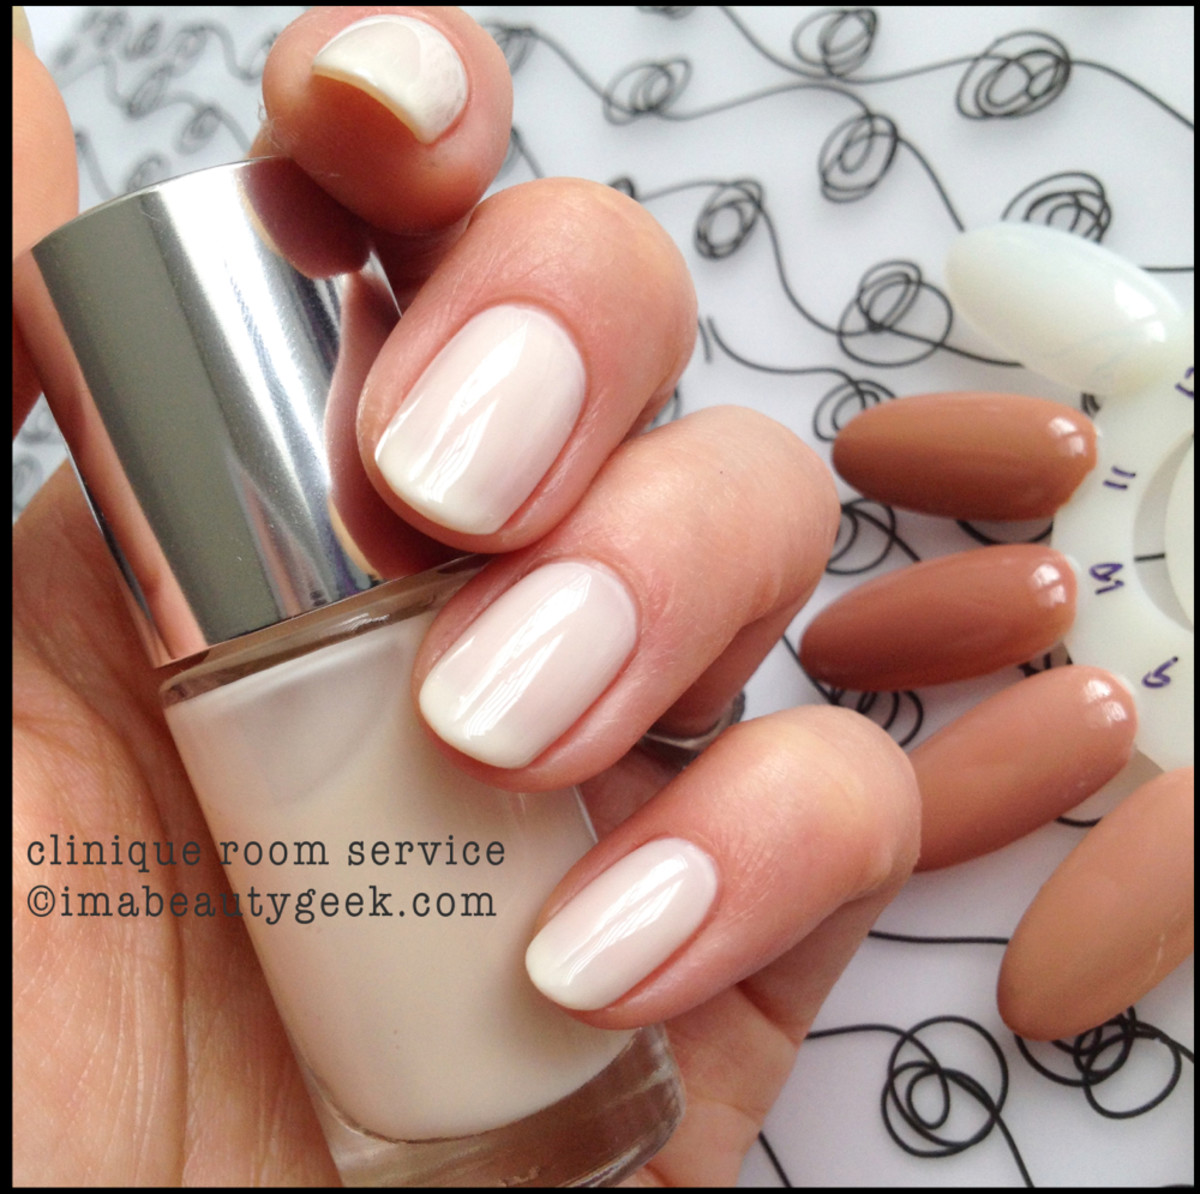 Clinique Nail Polish Nude Room Service